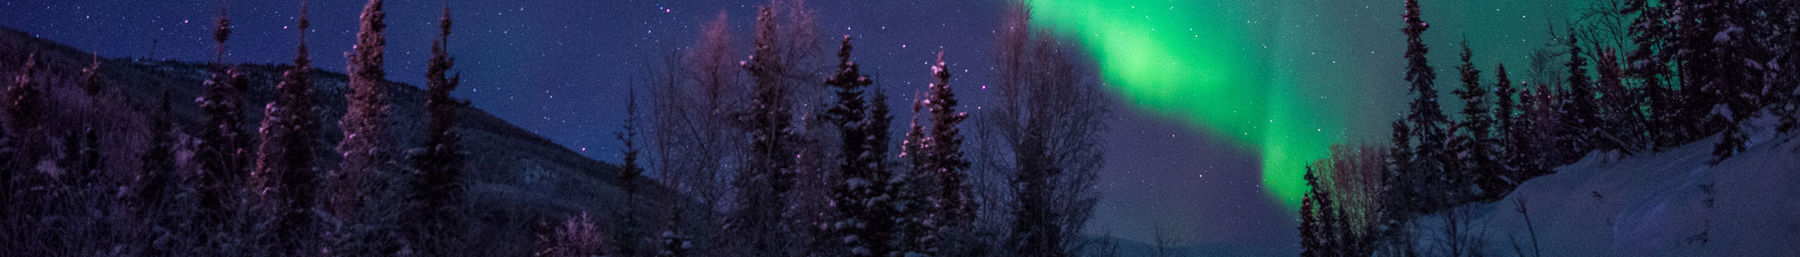 Fairbanks banner northern lights.jpg